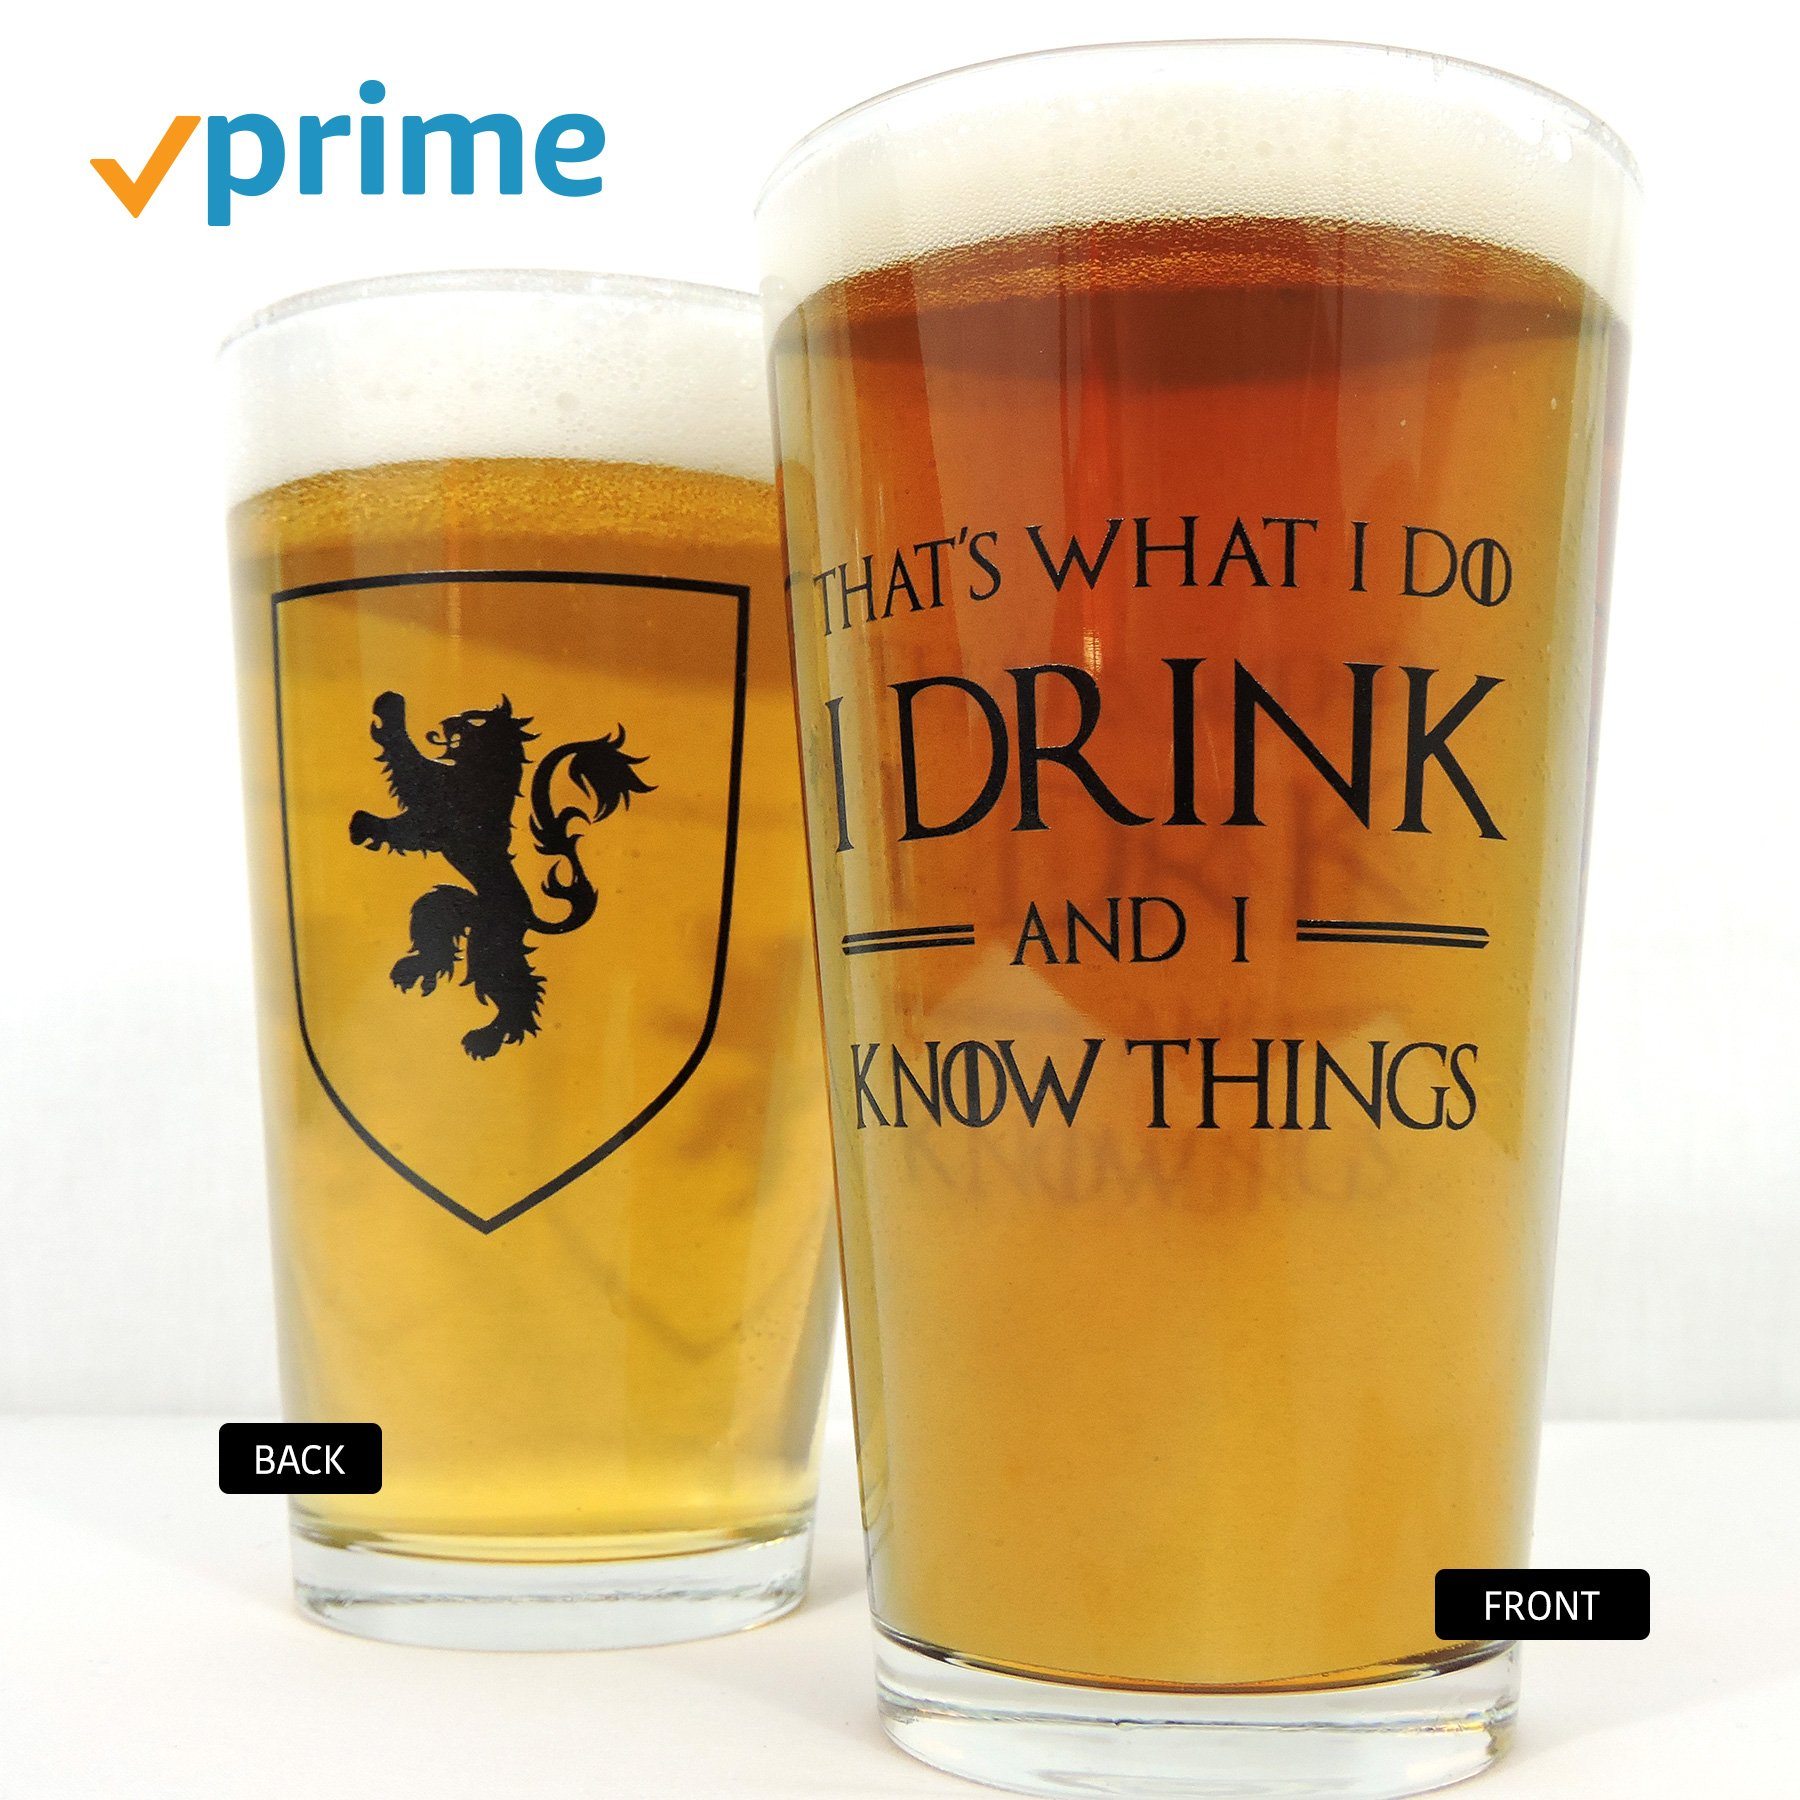 I Drink and I Know Things: Beer Glass - Perfect gift for Game of Thrones fans - Tyrion Lannister Mug Cup - 16oz - Made in USA by Joybomb Gift Co. (Image #1)